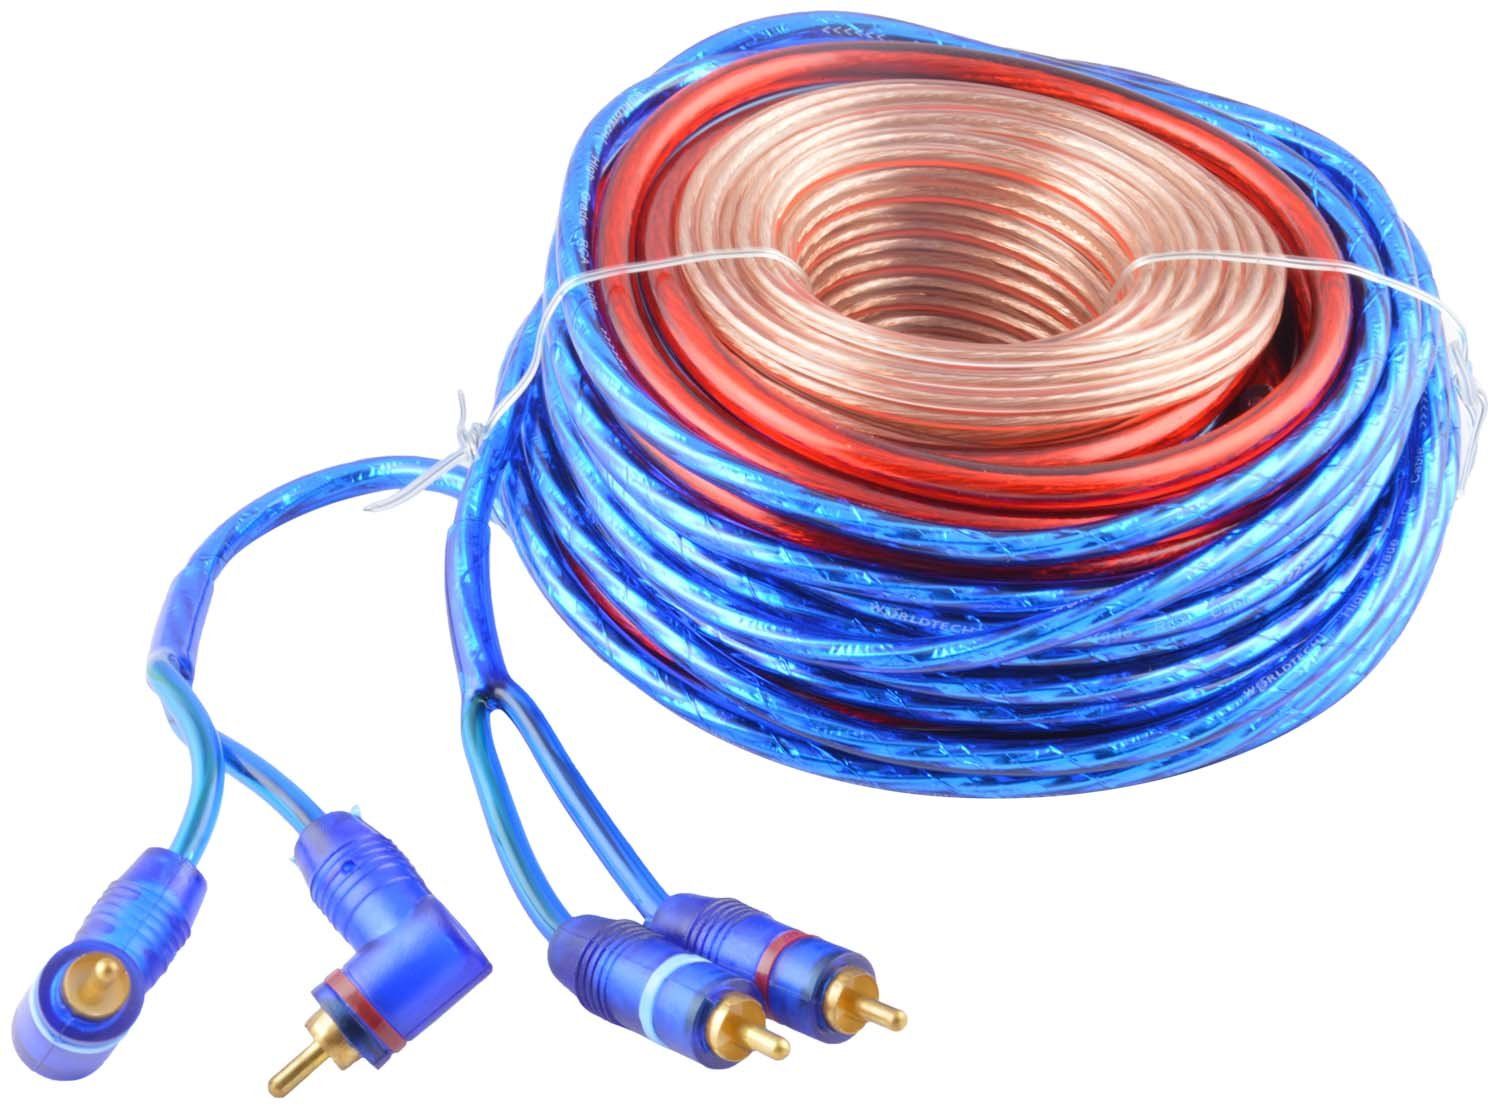 Car Amplifier Wiring Kit Price In India Electrical Diagrams Best Audio Buy Online At Prices Scosche Add On